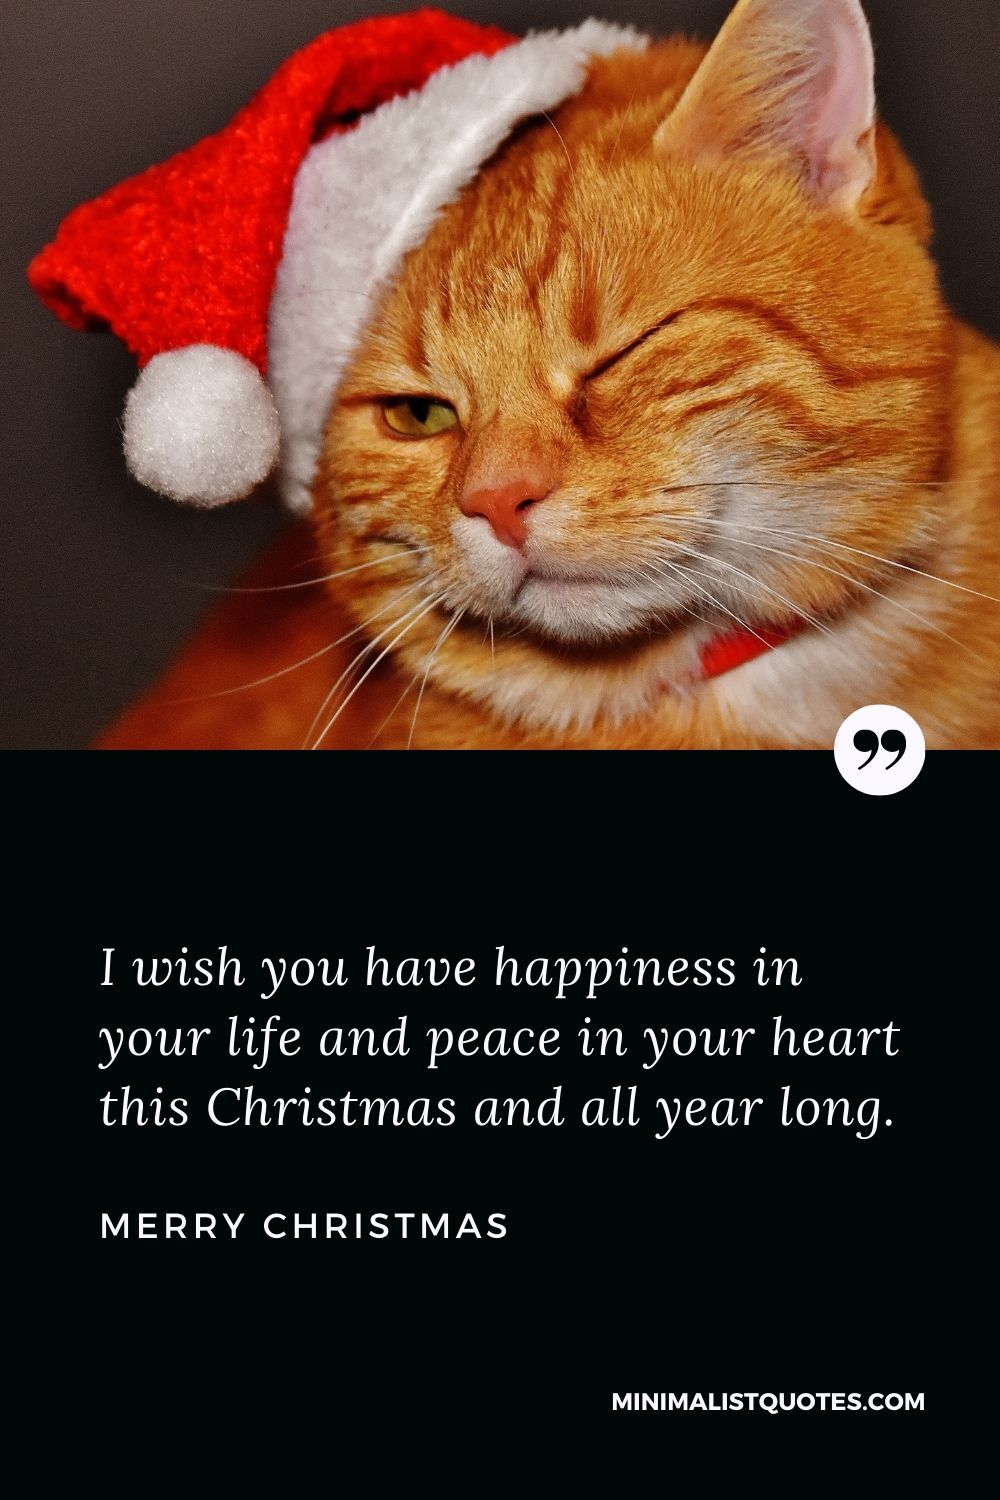 Merry Christmas Wish - I wish you have happiness in your life and peace in your heart this Christmas and all year long.